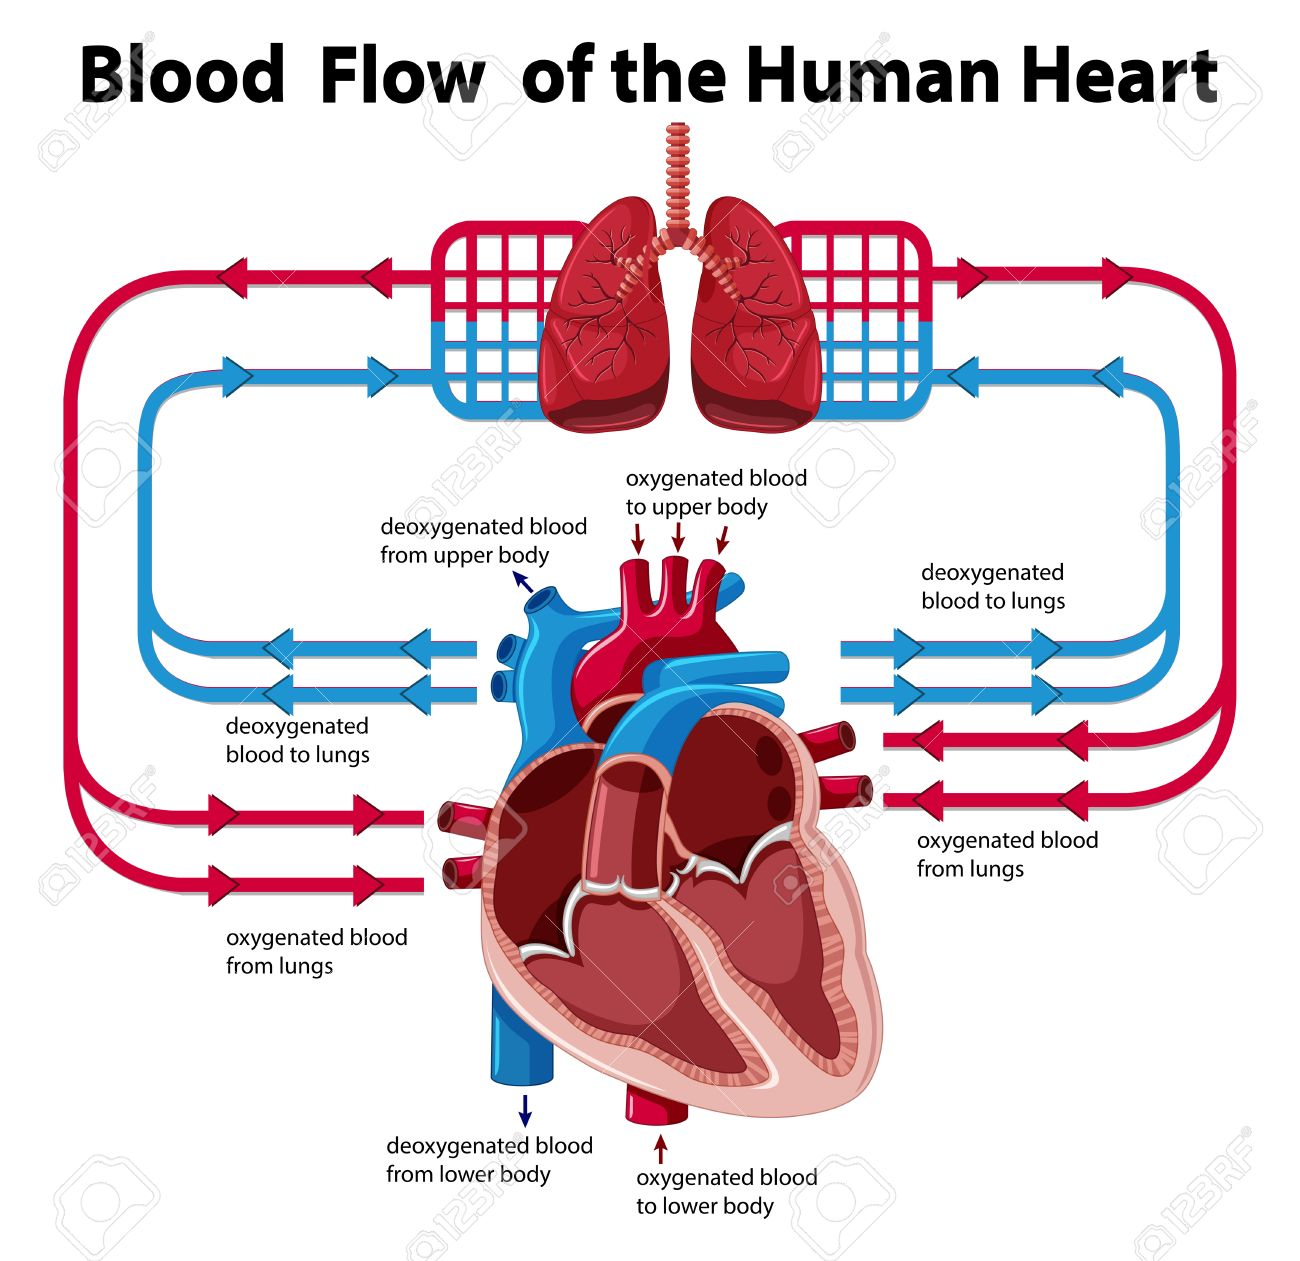 Blood flow diagram of jaw schematic wiring diagram chart showing blood flow of human heart illustration royalty free rh 123rf com blood flow diagram labeled labeled diagram of blood flow through the heart ccuart